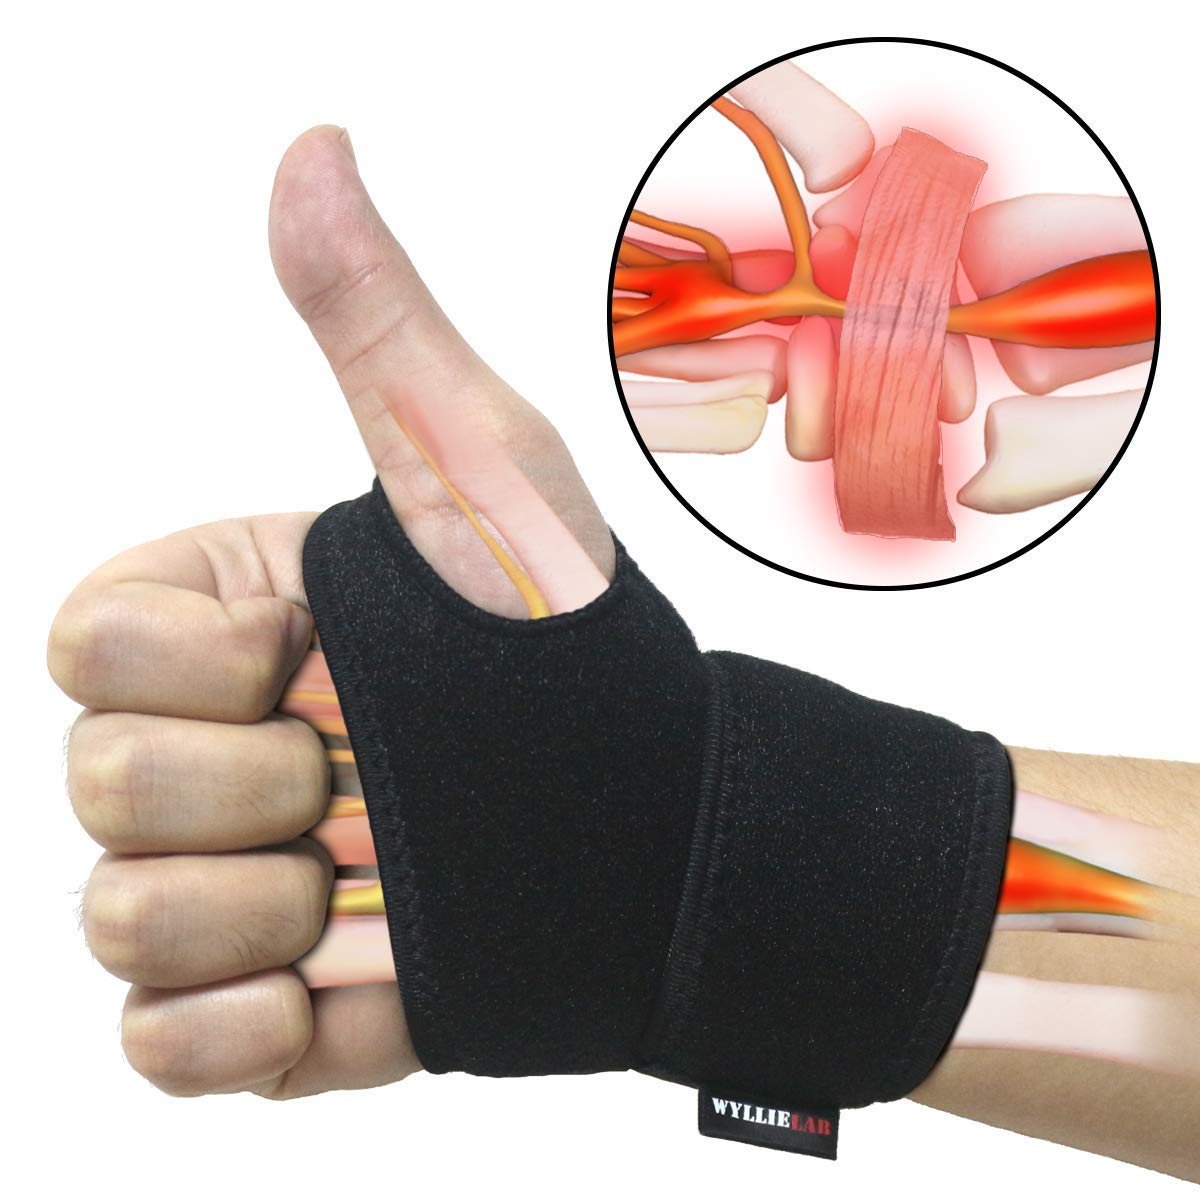 Wrist Brace for Carpal Tunnel, Comfortable and Adjustable Wrist Support Brace for Arthritis and Tendinitis, Wrist Compression Wrap with Pain Relief, Fit for Both Left Hand and Right Hand - Single by WYLLIELAB